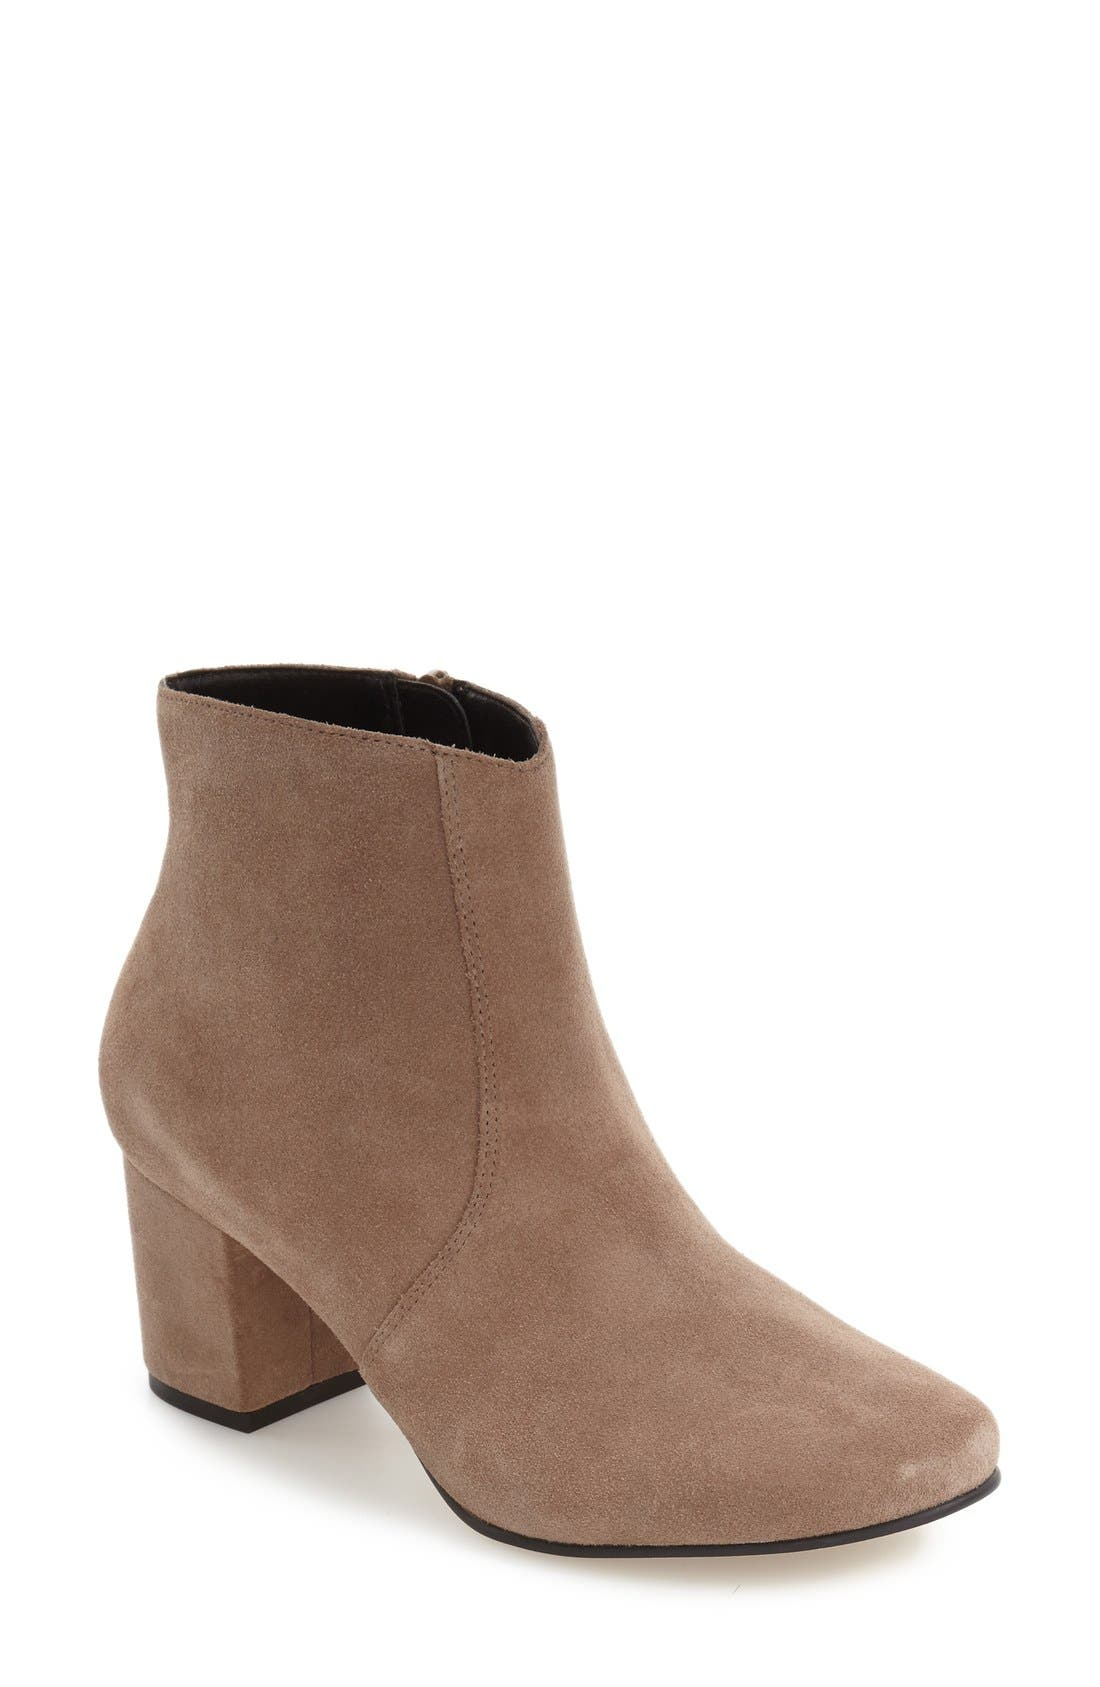 Alternate Image 1 Selected - Sole Society Pippa Bootie (Women)